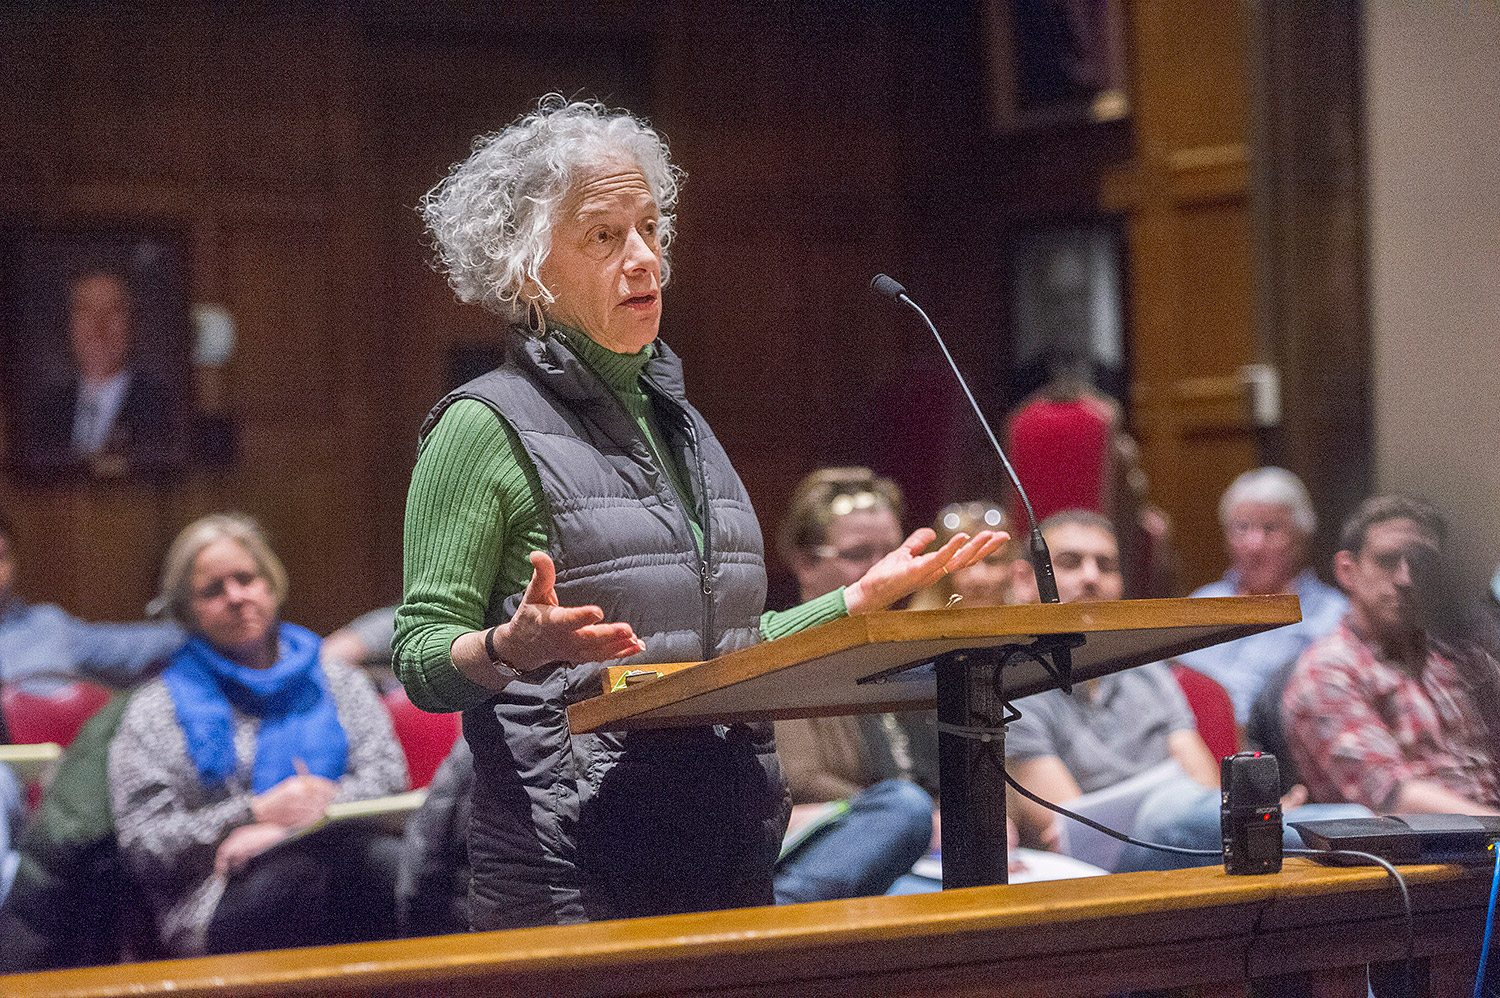 Elizabeth Lantz, who lives on Longfellow Street, speaks out against the short-term rentals during Wednesday's hearing at Portland City Hall.